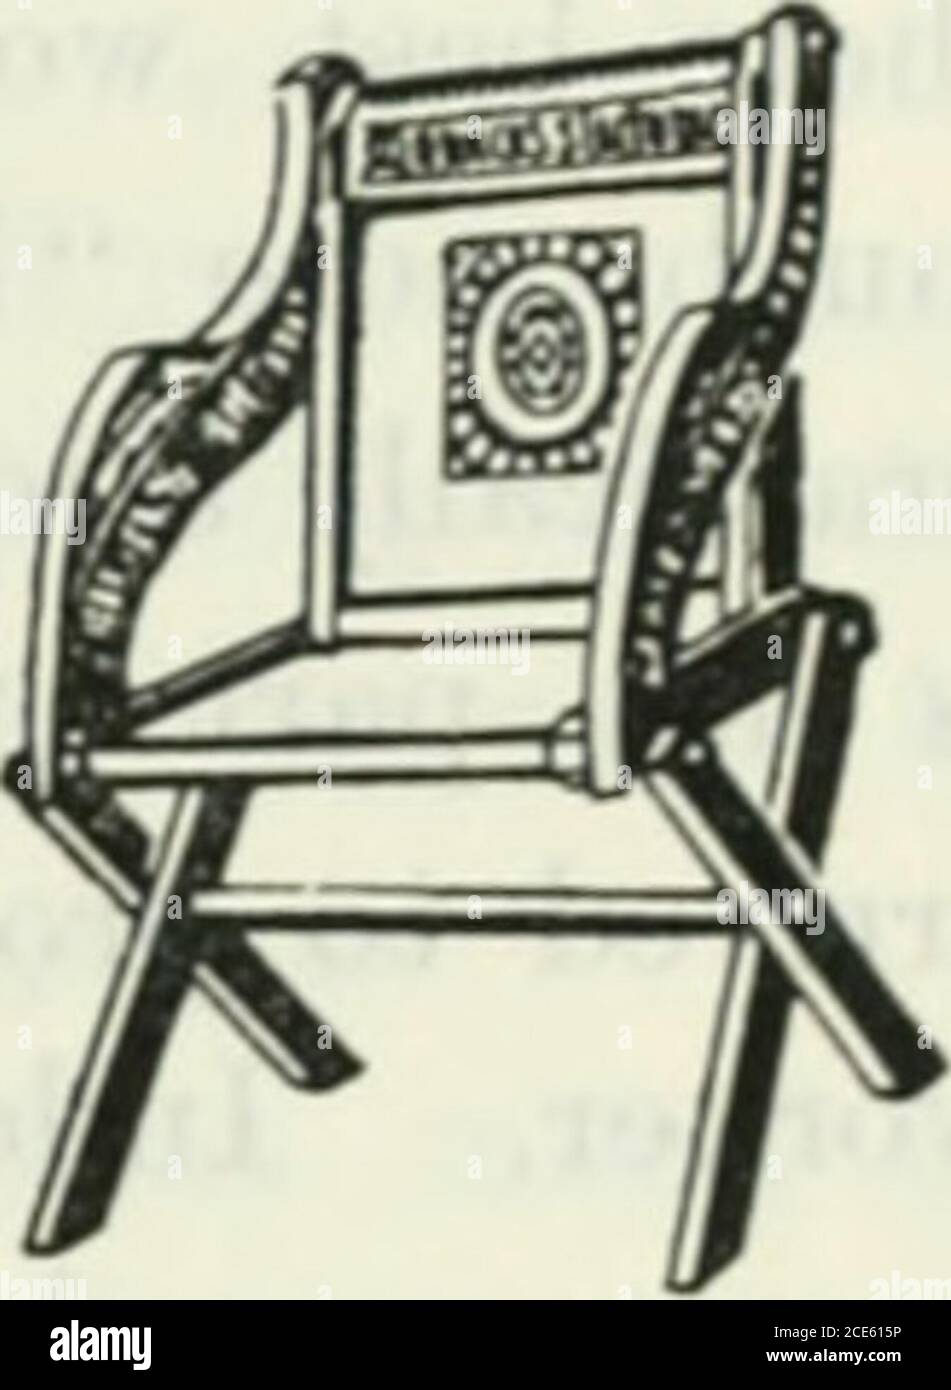 . The book of decorative furniture, its form, colour and history . ORIGIXAL CLASTON- 13K1T1SH DECORATIVE FUKMTUKE TLDOU 105 it advisable to leave oijen the spaces at the sides underneath the chairarms ; for fashions in di-ess often dictate the forms of furniture. Neither the Elizabethan nor the Jacobean chair was easily movedwith one hand. Comparatively light chairs, known as Ccxiuetoire,Cacfjtietetise, Conversation, or Chaue de Feiaine, with high and narrowbacks, were in use on the Continent during the sixteenth century, and afew were imported to this country, but English chair-makeis were fa Stock Photo